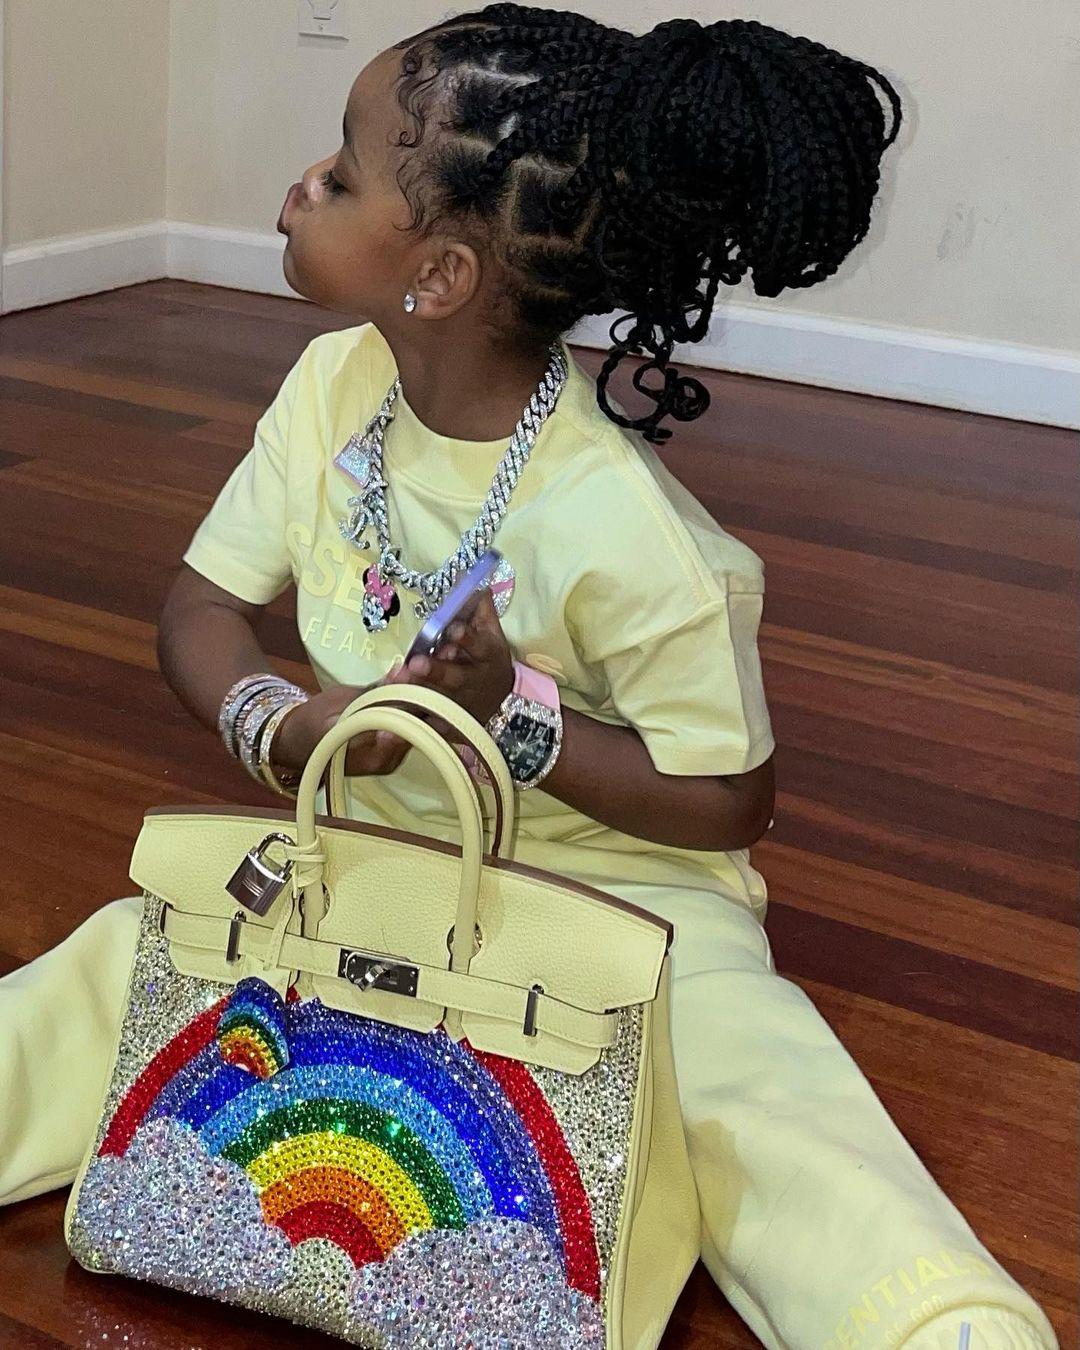 Cardi B Gives 3-Year-Old Daughter A Bedazzled $50,000 Handbag!